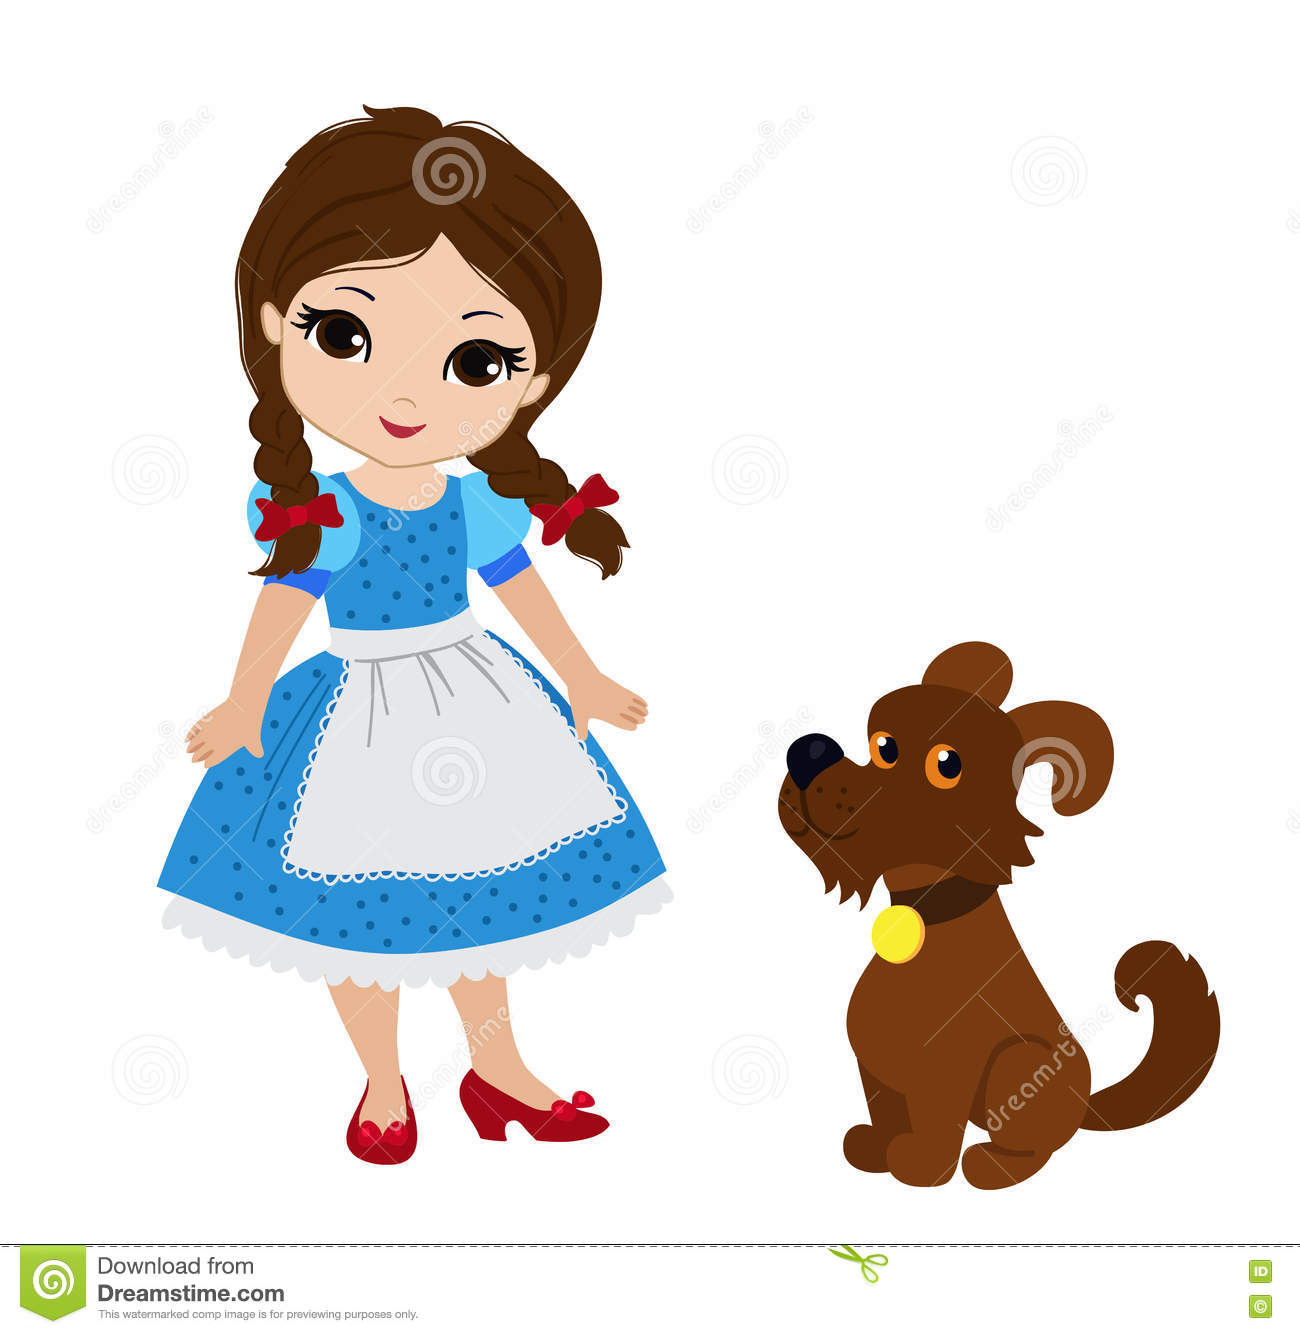 Dorothy wizard of oz clipart 6 » Clipart Station.